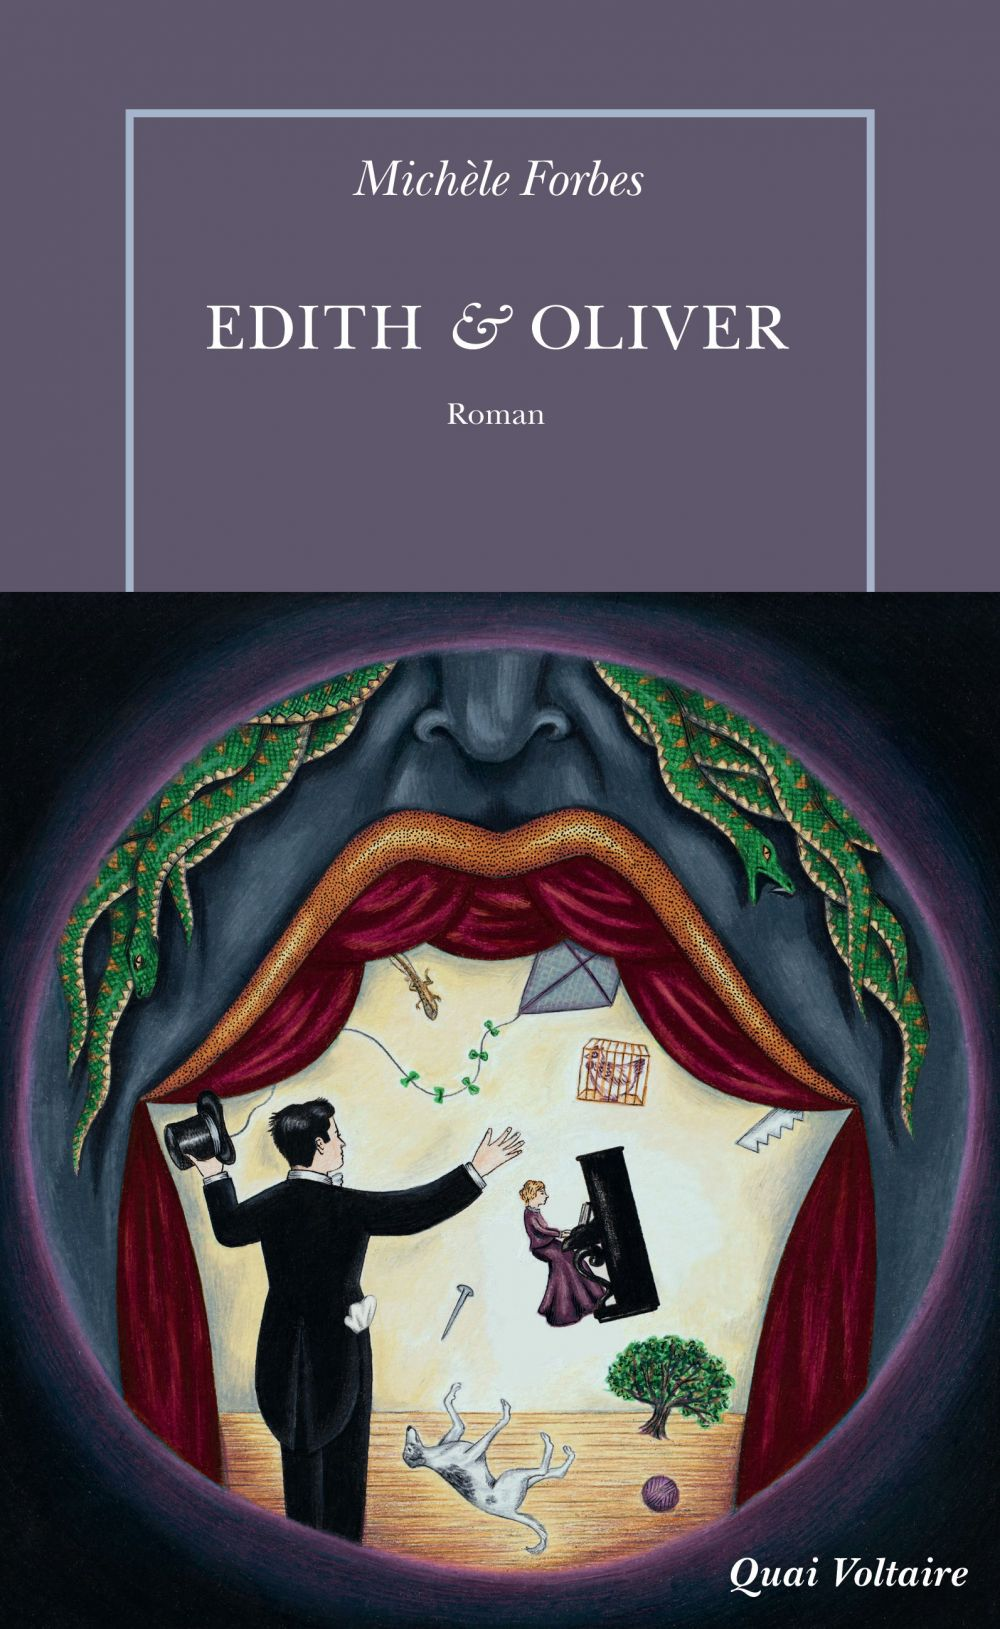 Edith & Oliver